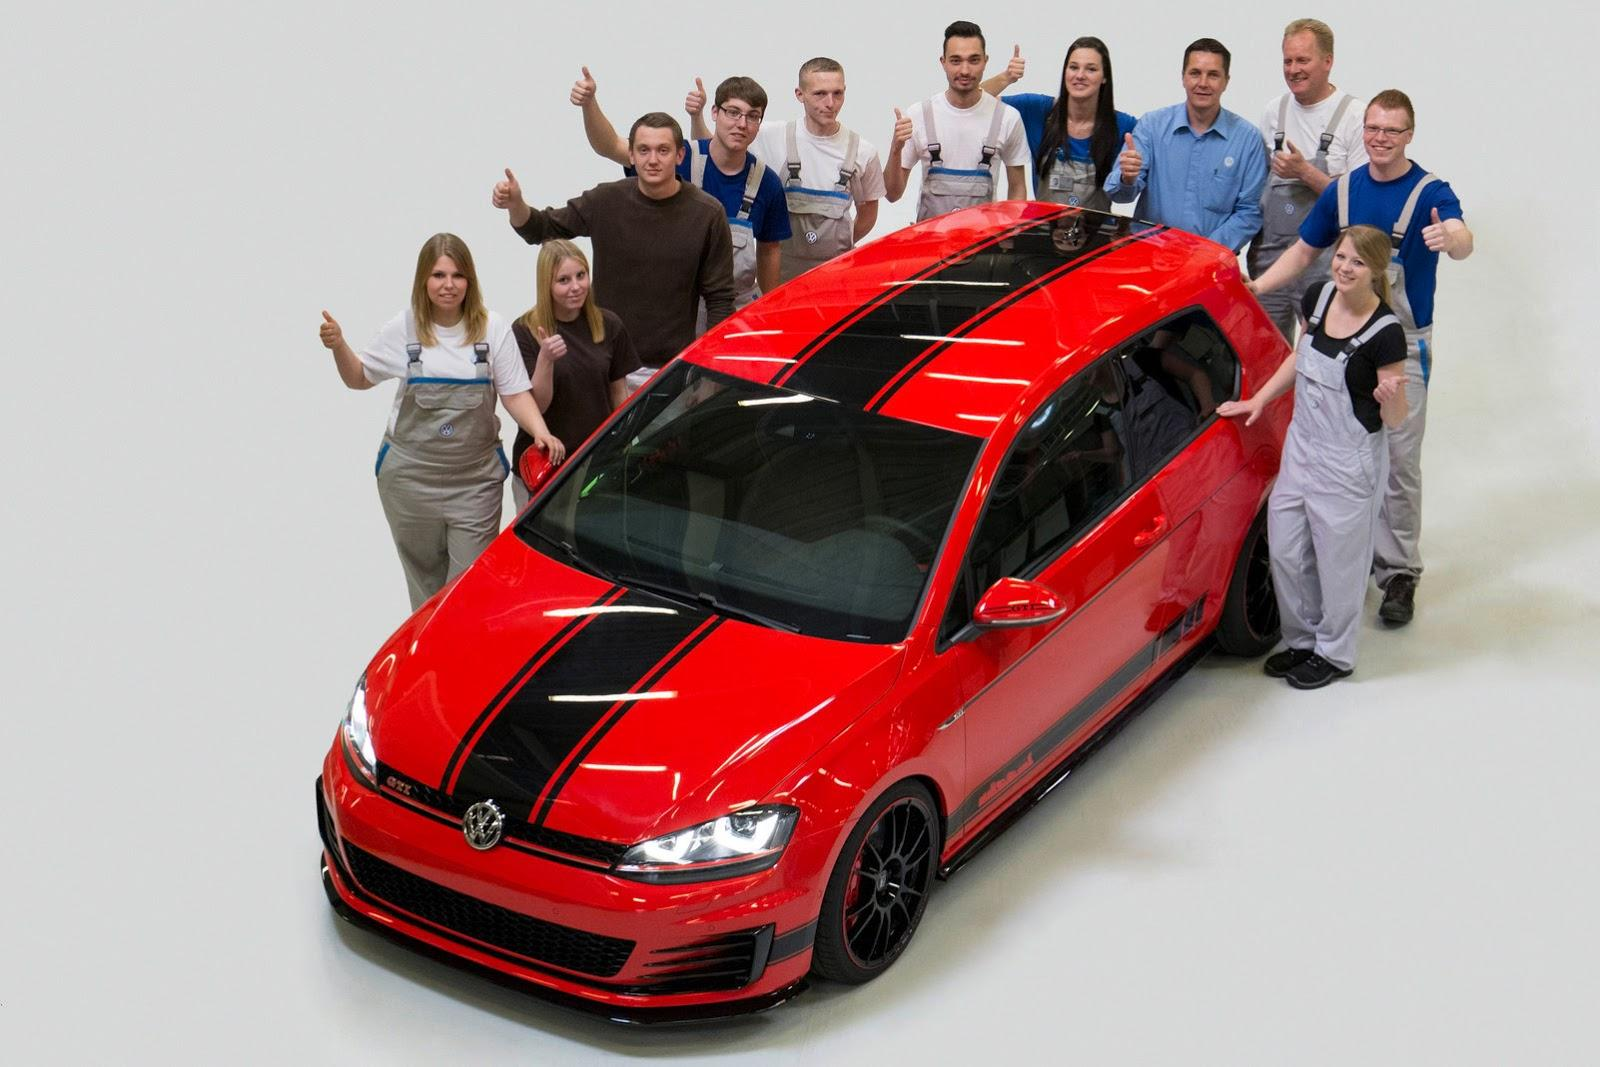 volkswagen tuning 279kw golf gti wolfsburg edition. Black Bedroom Furniture Sets. Home Design Ideas